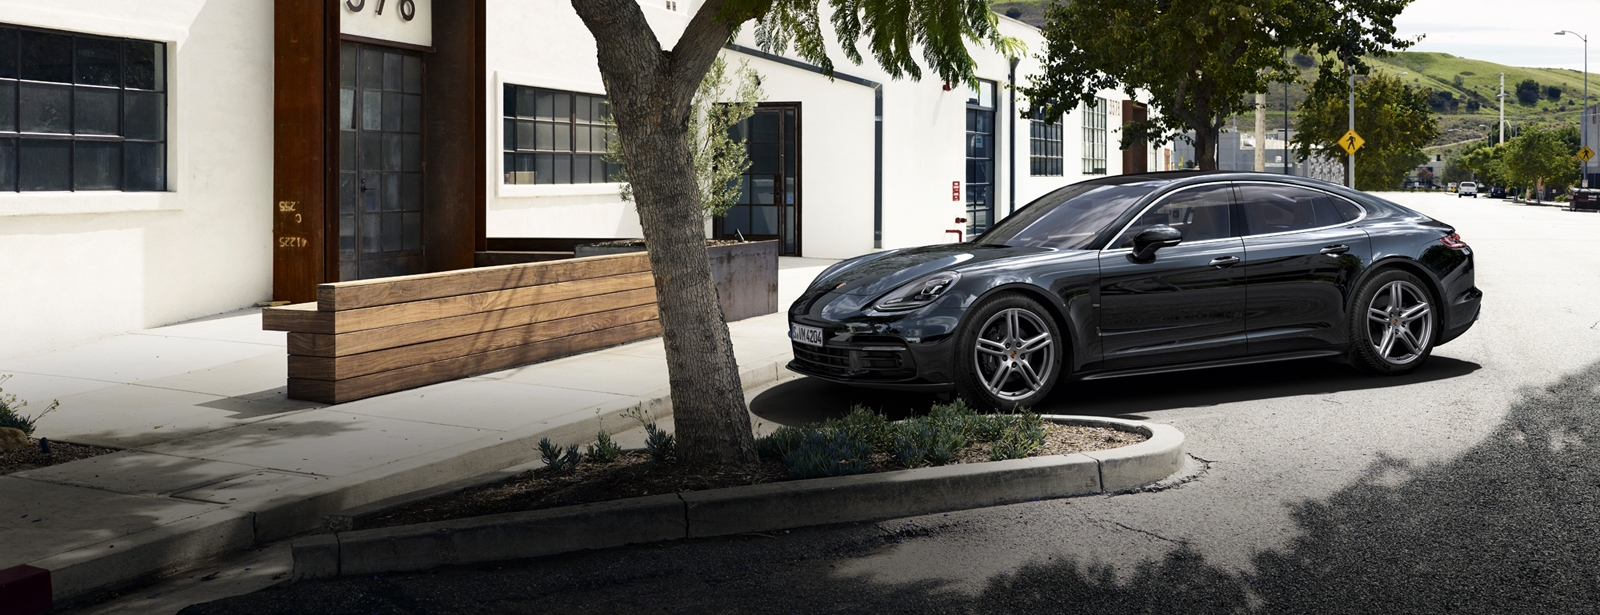 Porsche - Panamera 4 - Courage changes everything.